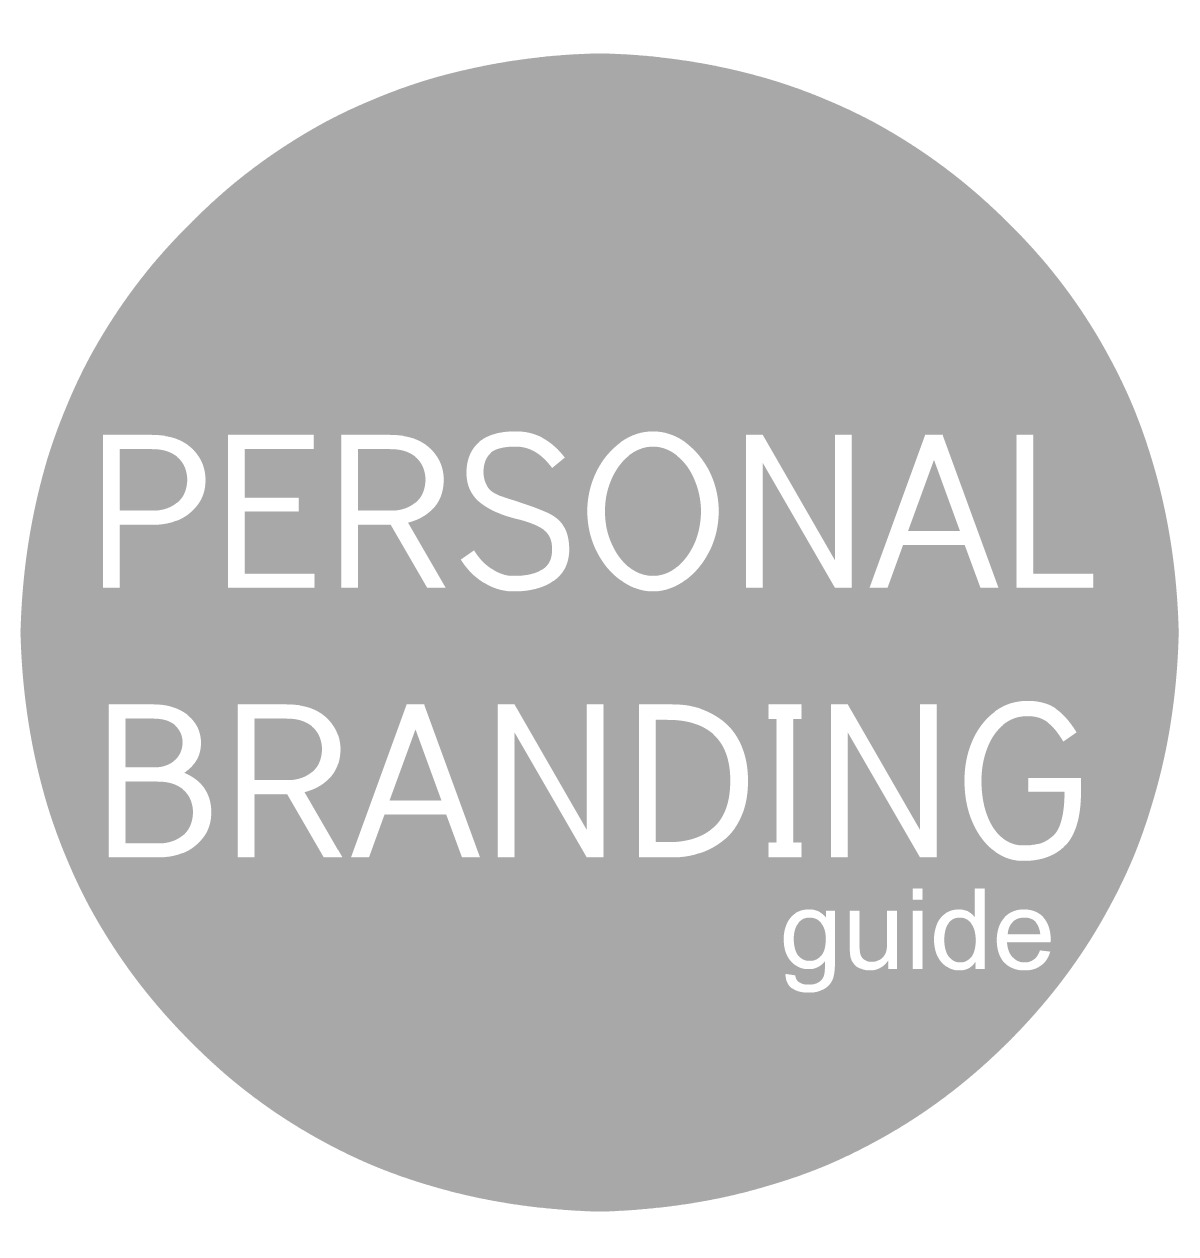 branding personal important guide ensuring component potential values true living personalbranding